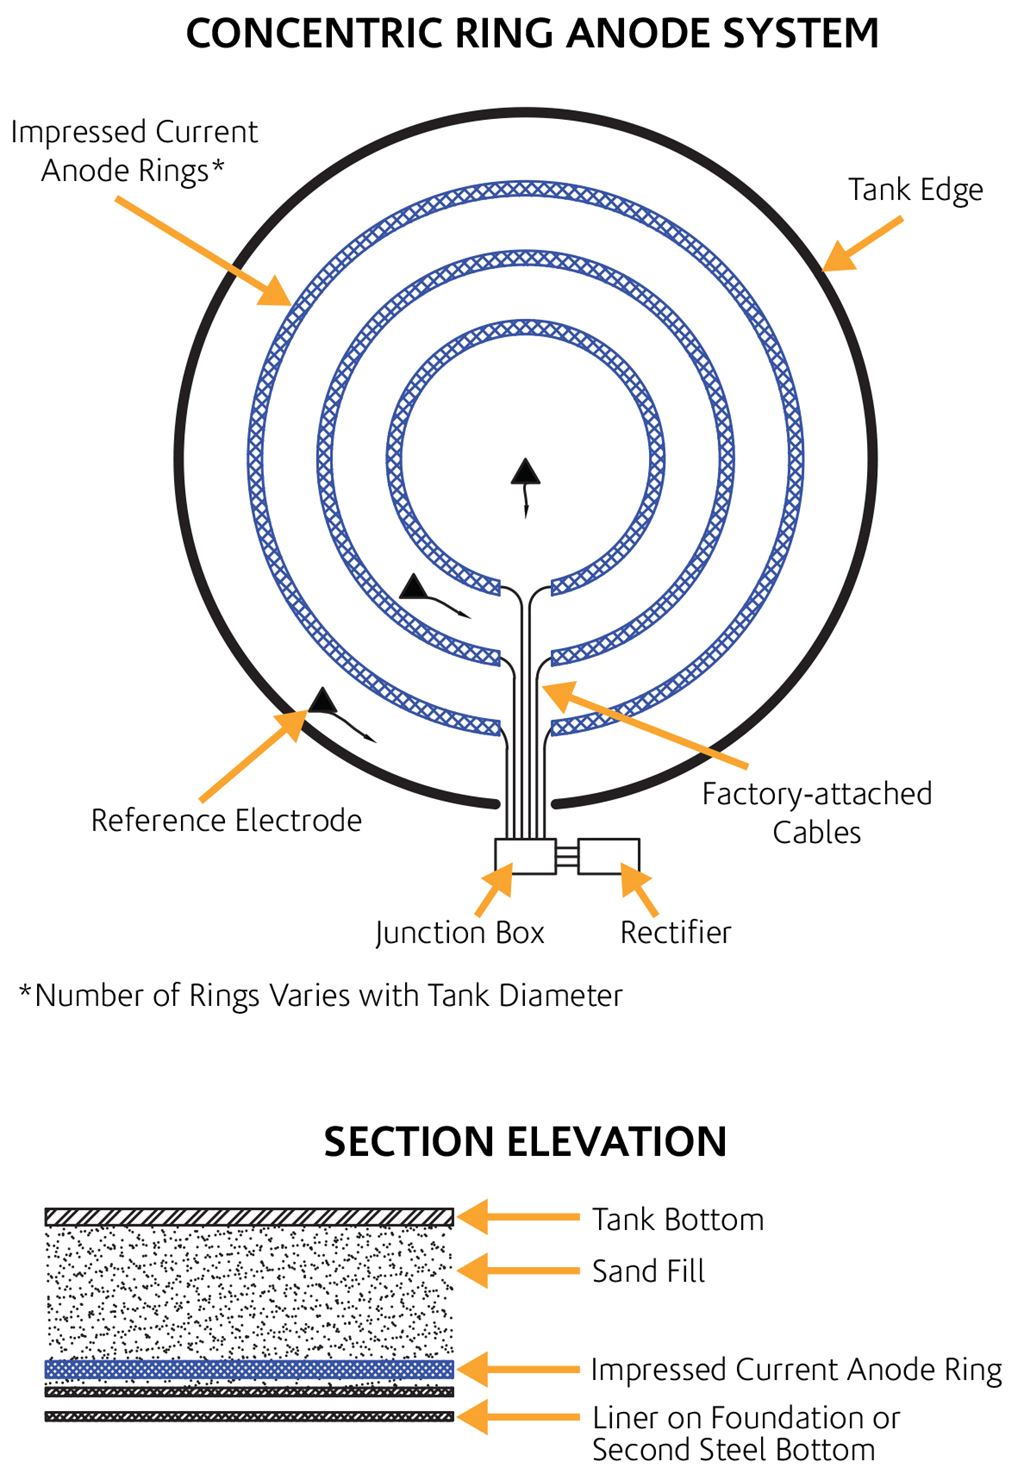 External Tank Bottom Cathodic Protection: State of the Art Anode Technology